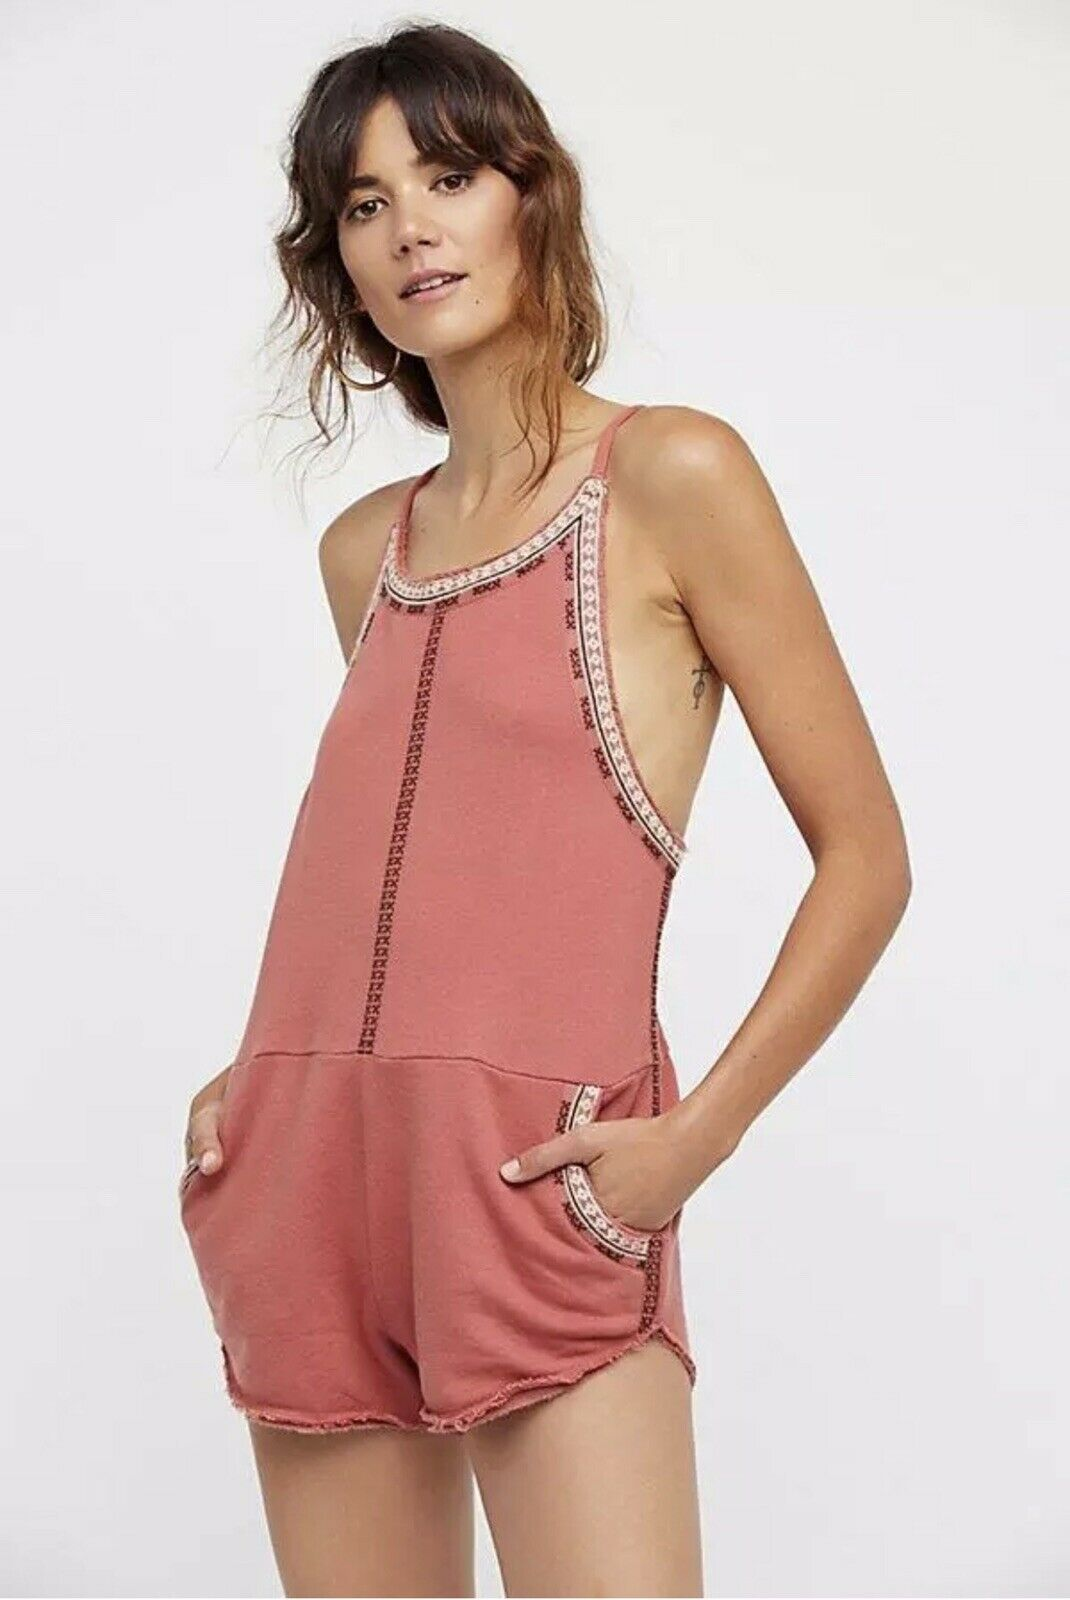 Free People FP One Lou Romper Knit Halter Embroidered One Piece Size SZ XS